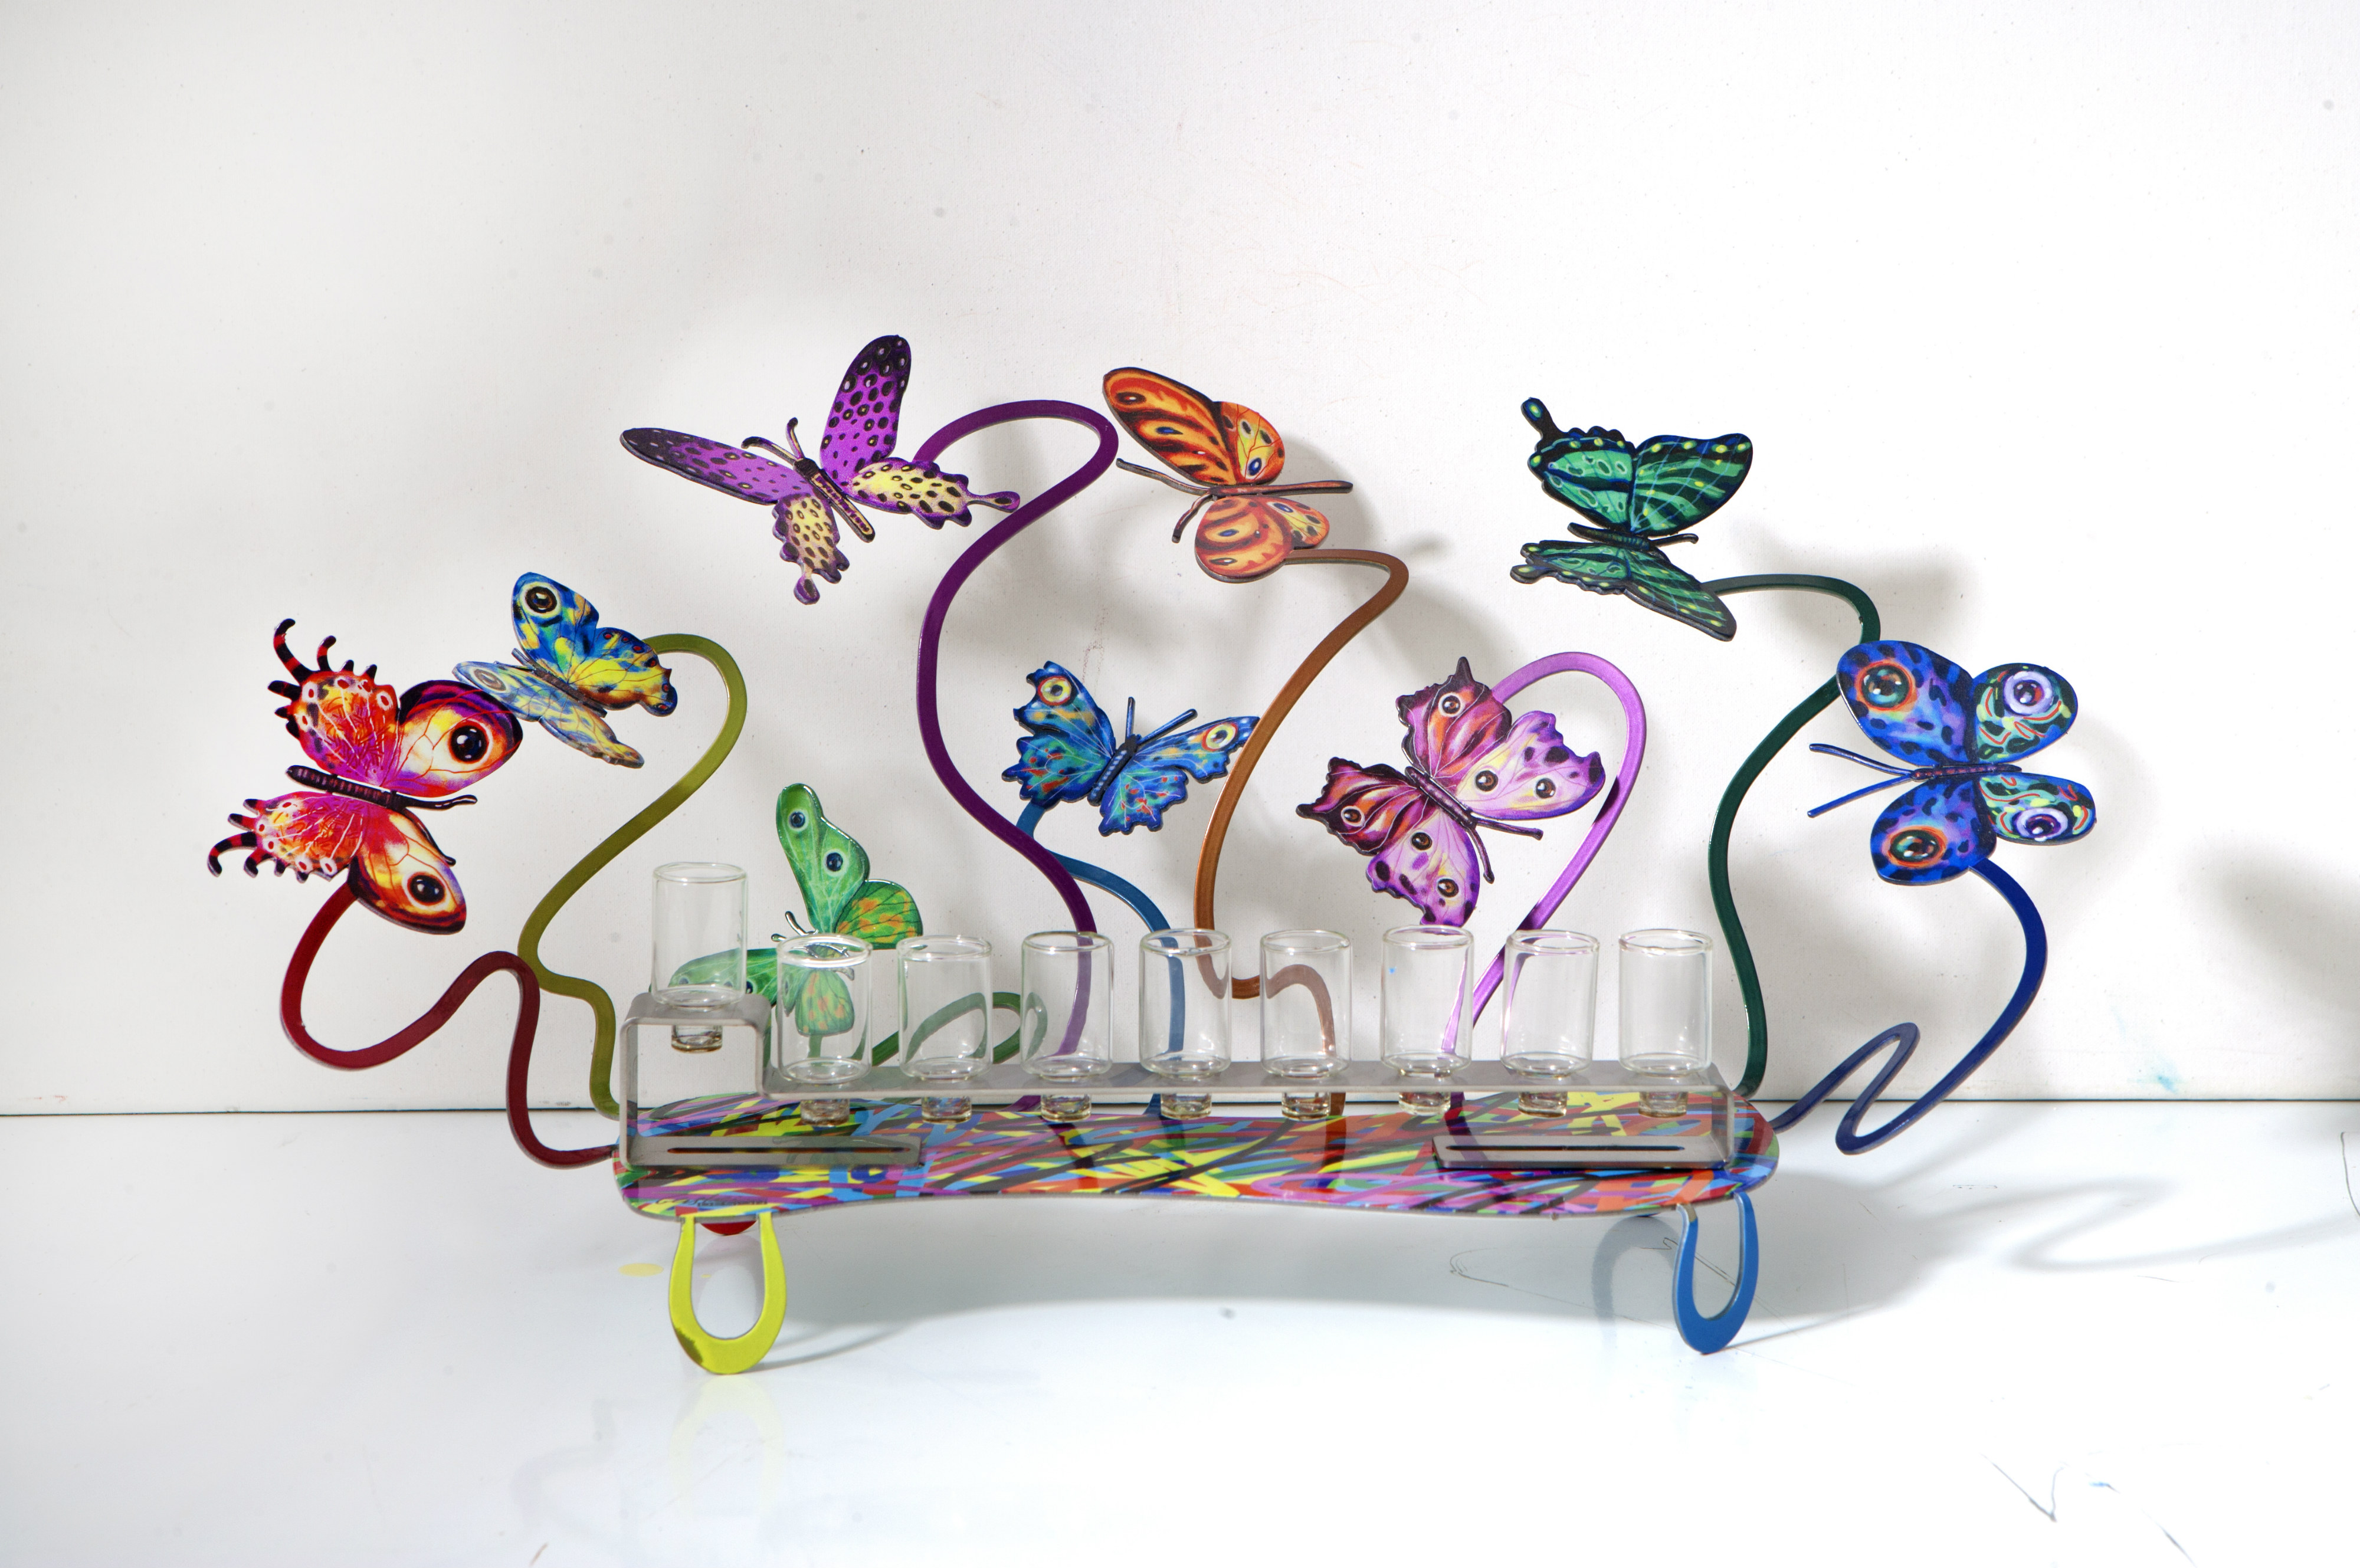 Hannukia Butterflies by David Gerstein exclusive to GersteinART